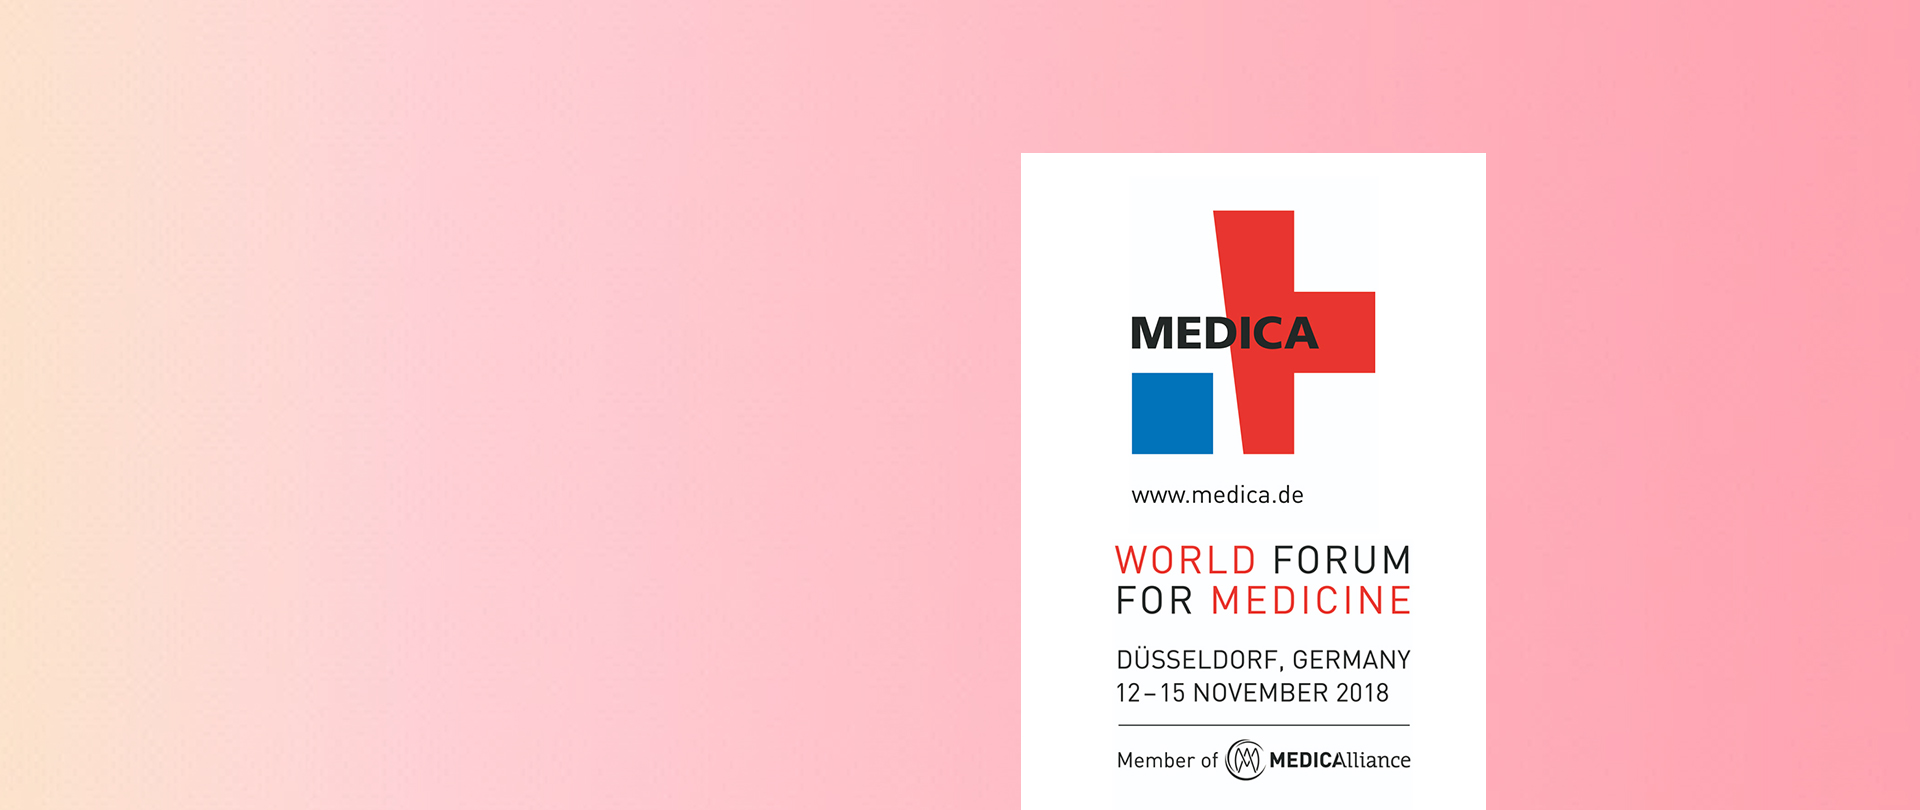 Presenti al World Forum for Medicine 2018